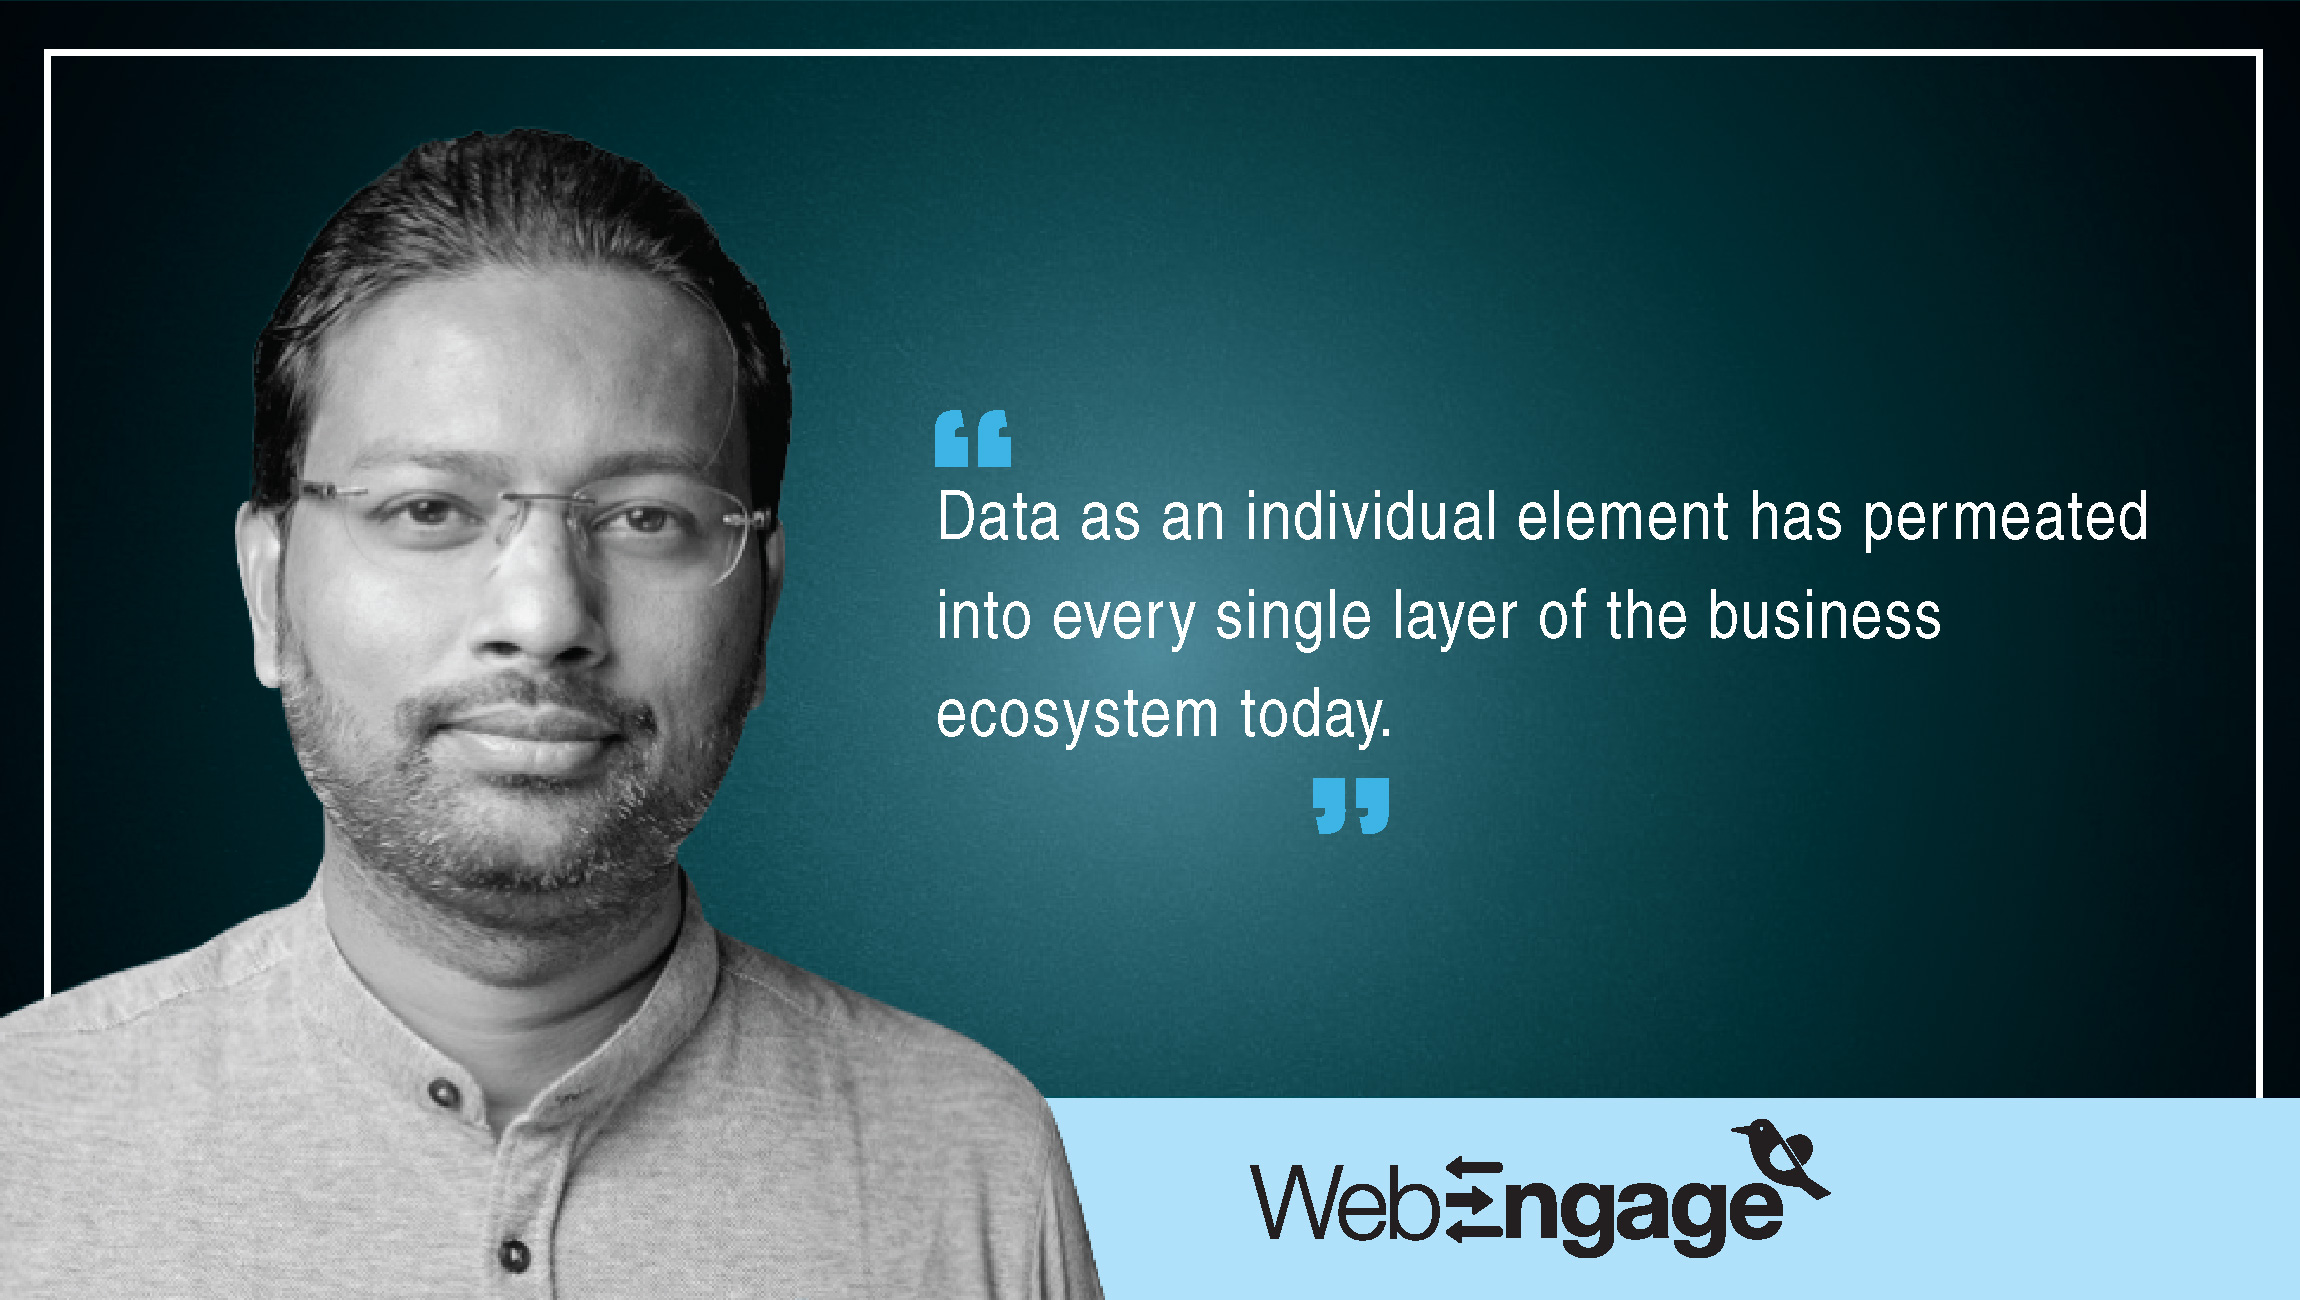 TechBytes with Avlesh Singh, Co-Founder and CEO at WebEngage